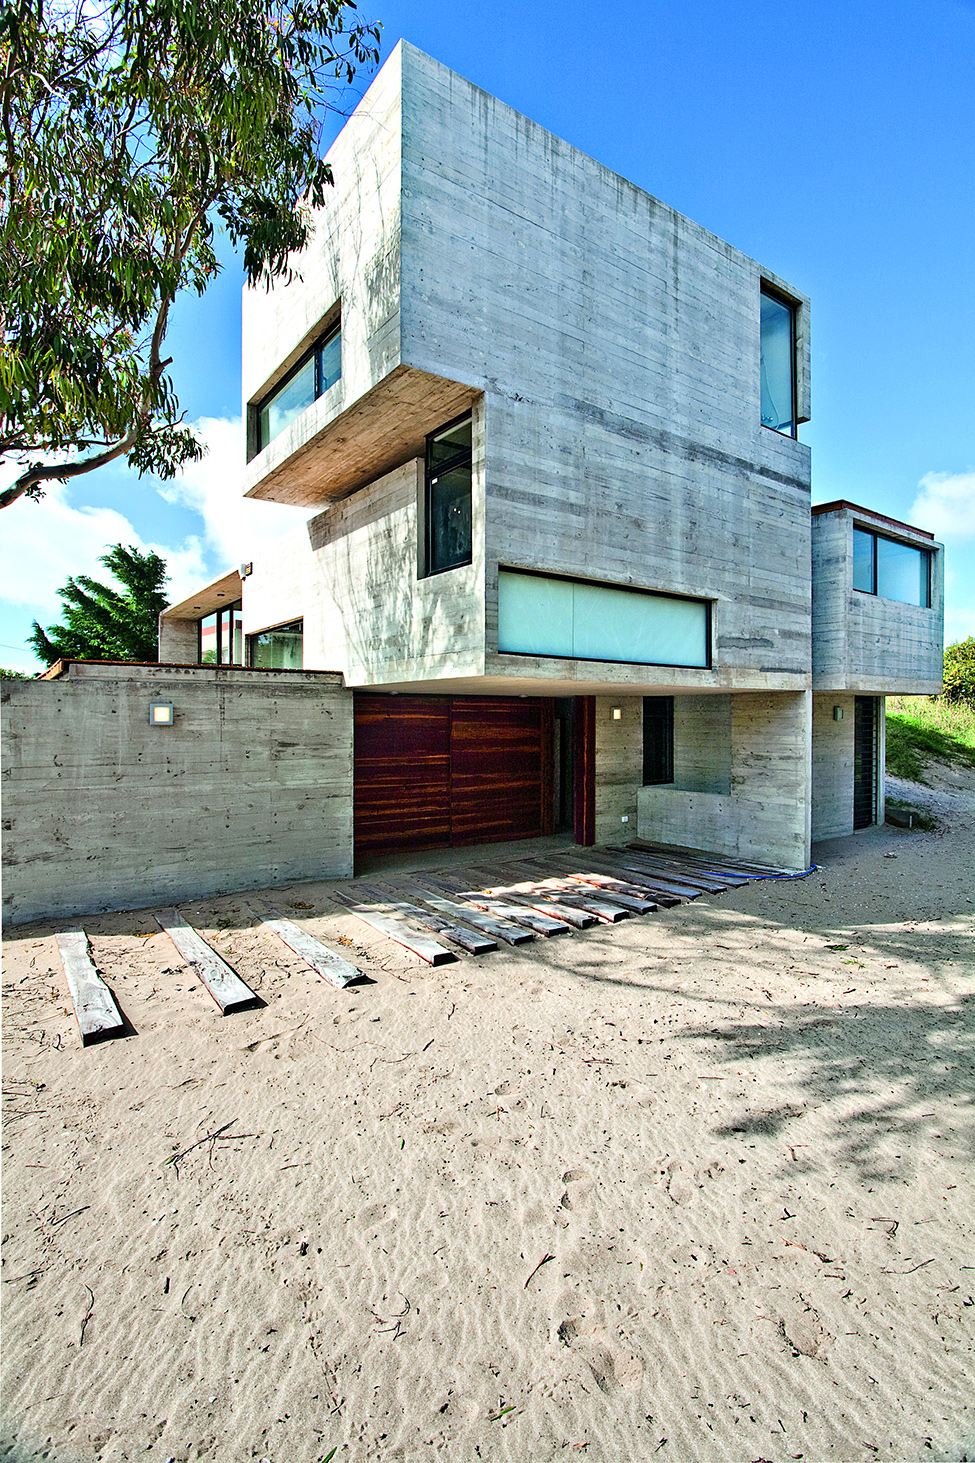 Industrial-Aesthetic-Values-in-a-Beach-Home-by-BAK-Architects-2